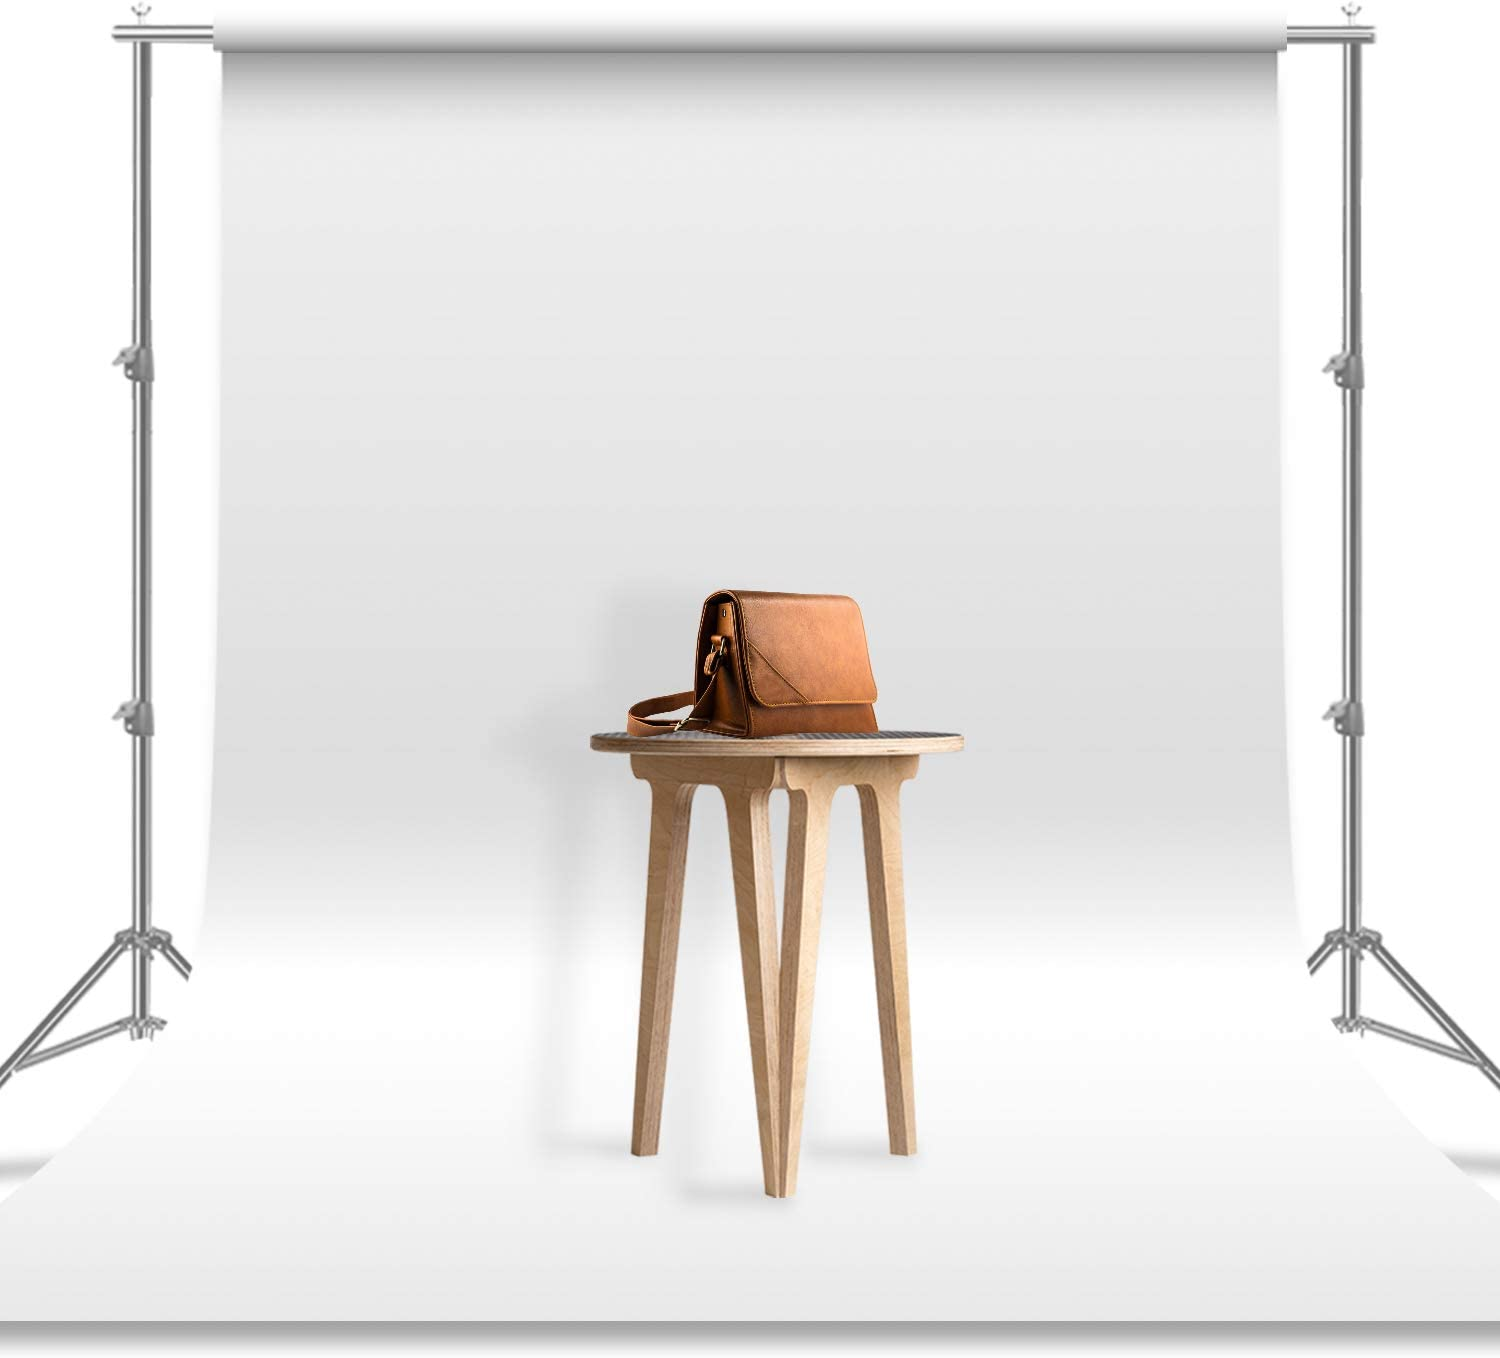 Julius Studio 6 x 9 ft. / 1.8 x 2.8 M/White Photo Video Photography Studio Fabric 100% Pure Backdrop Background Screen, JSAG103